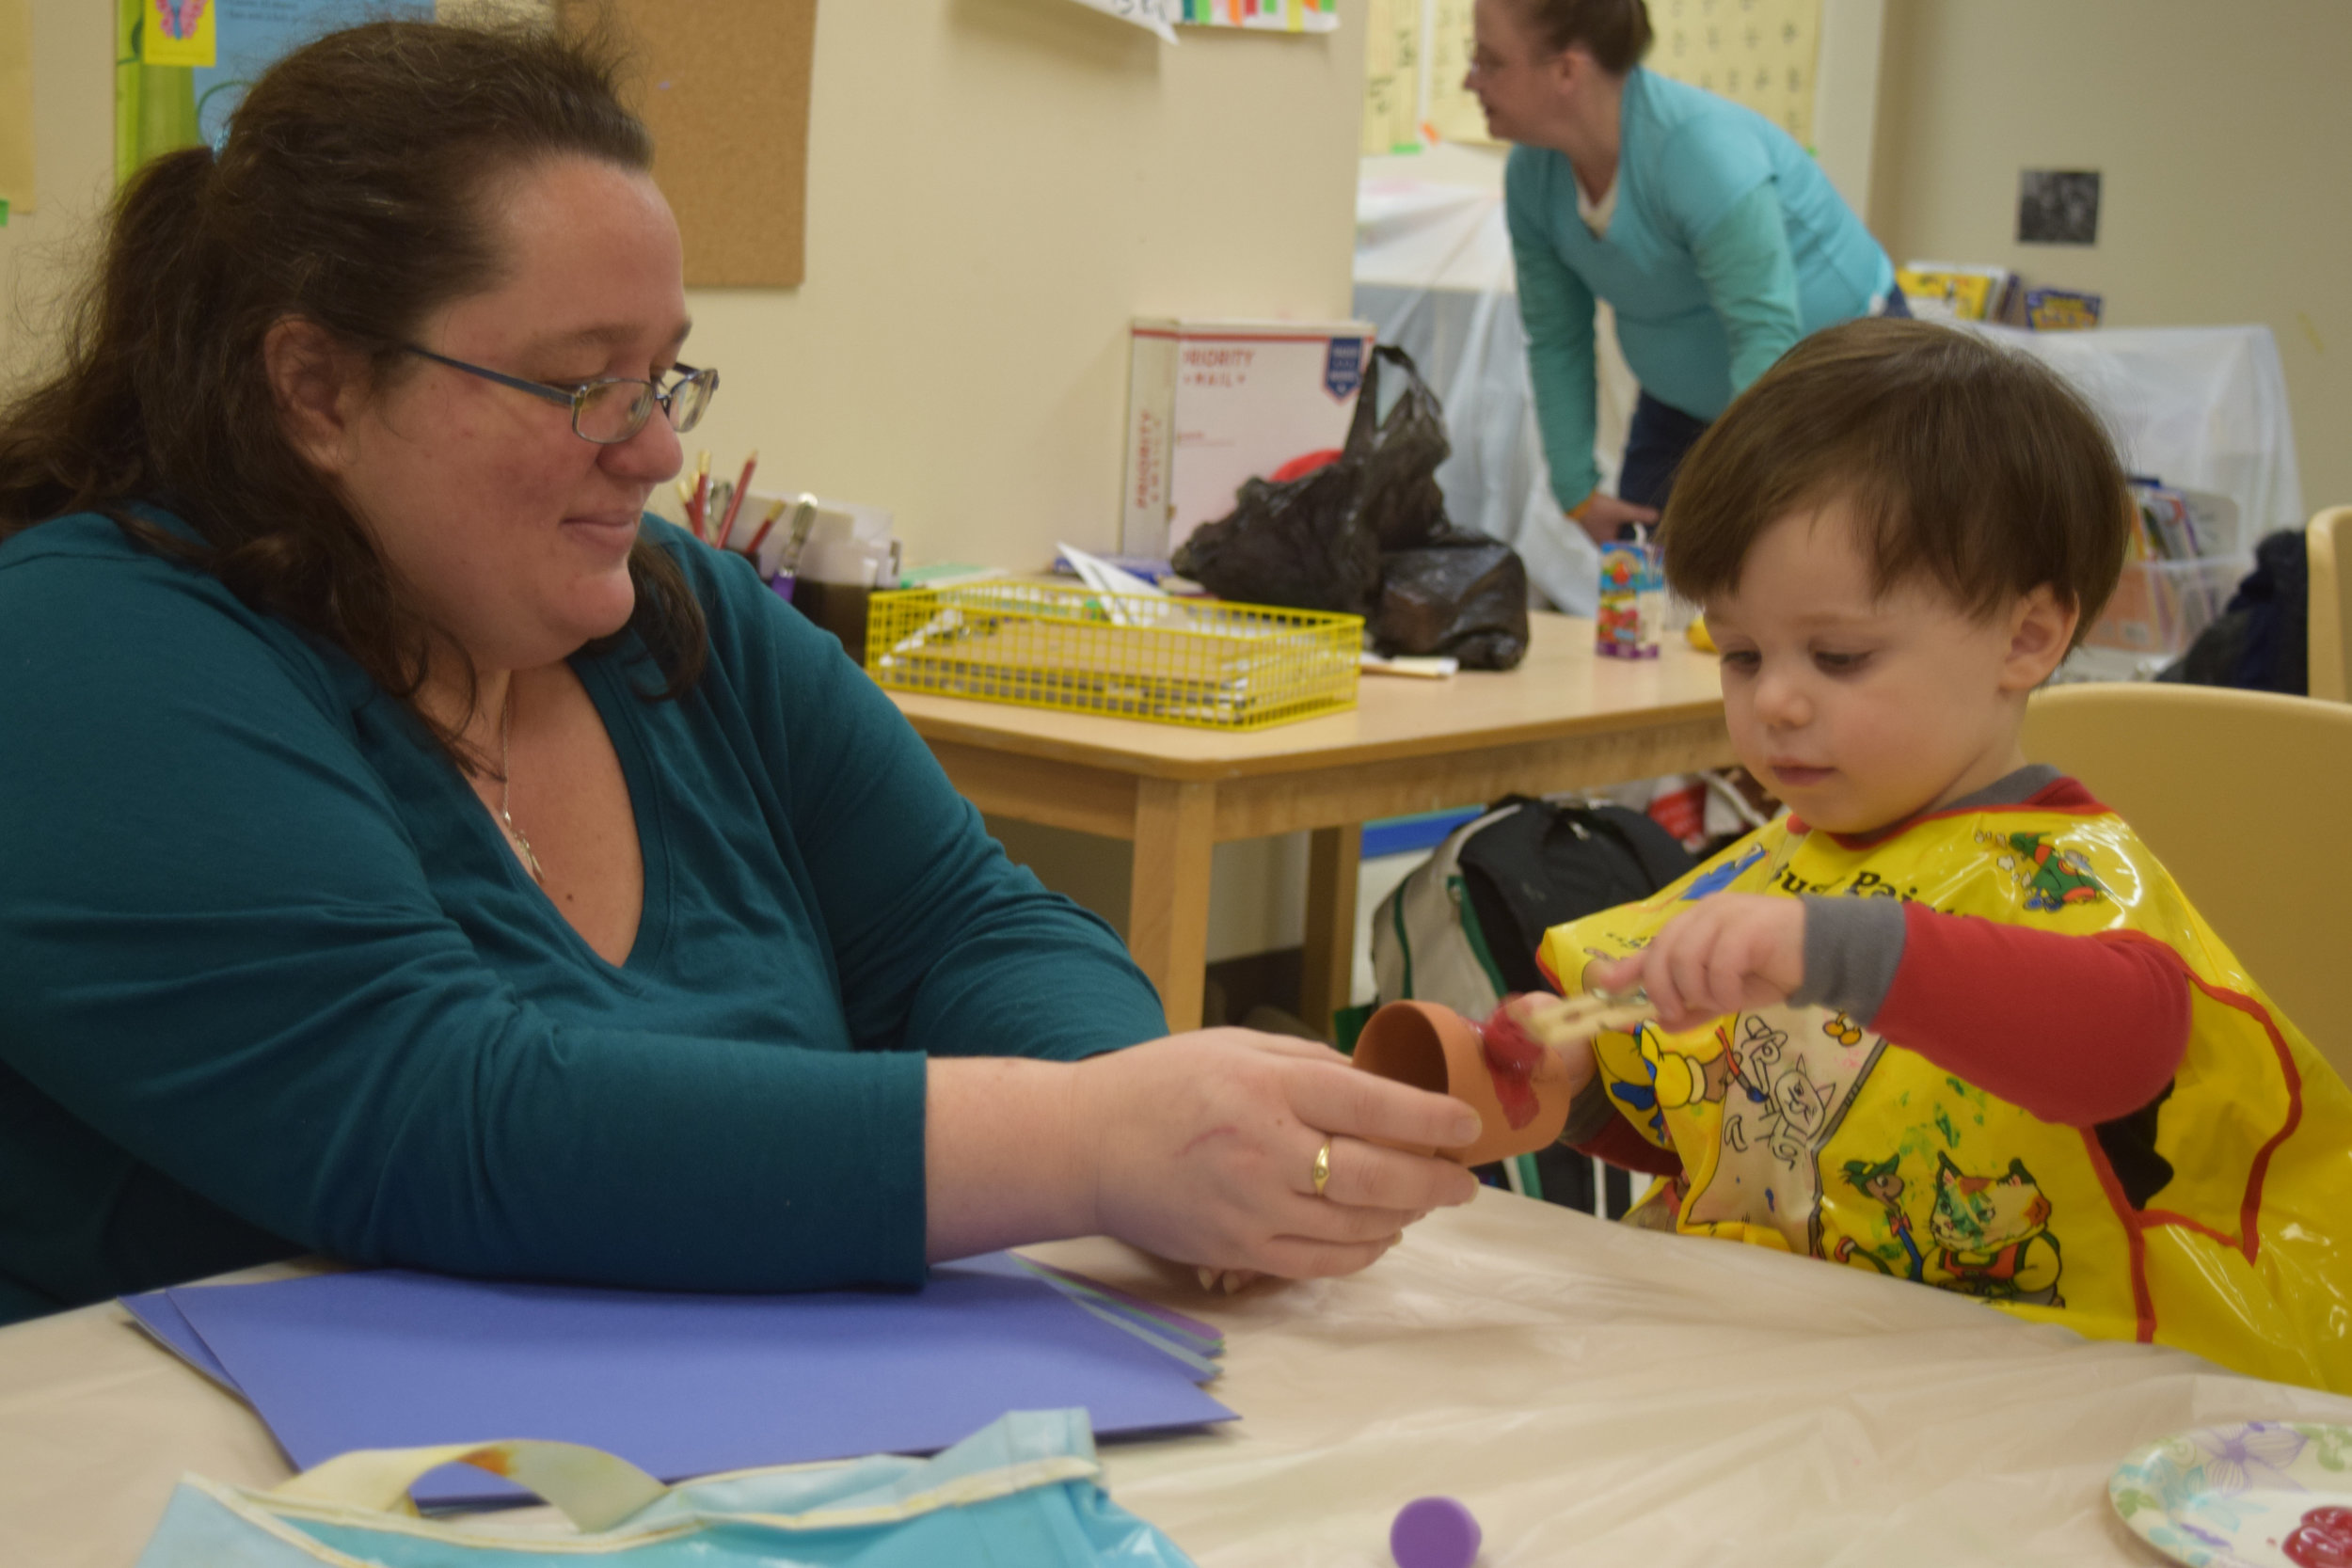 Candice Riggs holds a flower pot as her son, Jasper, paints it.